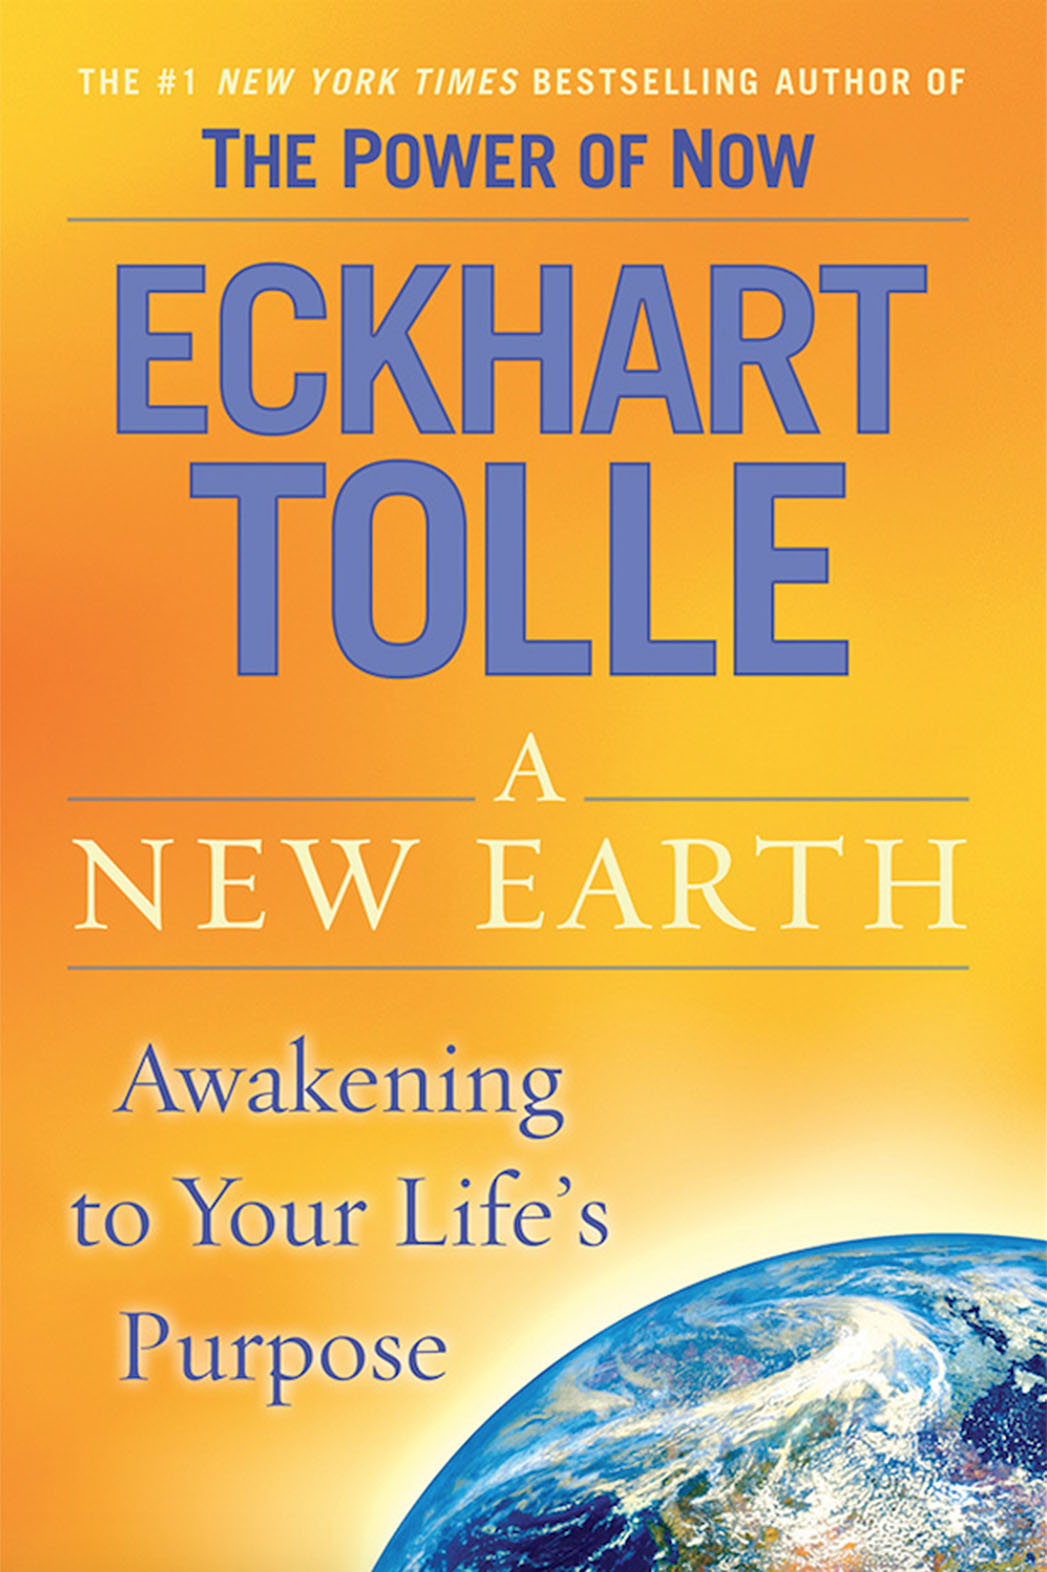 Eckhart Tolle's book A New Earth Book Cover - P 2015